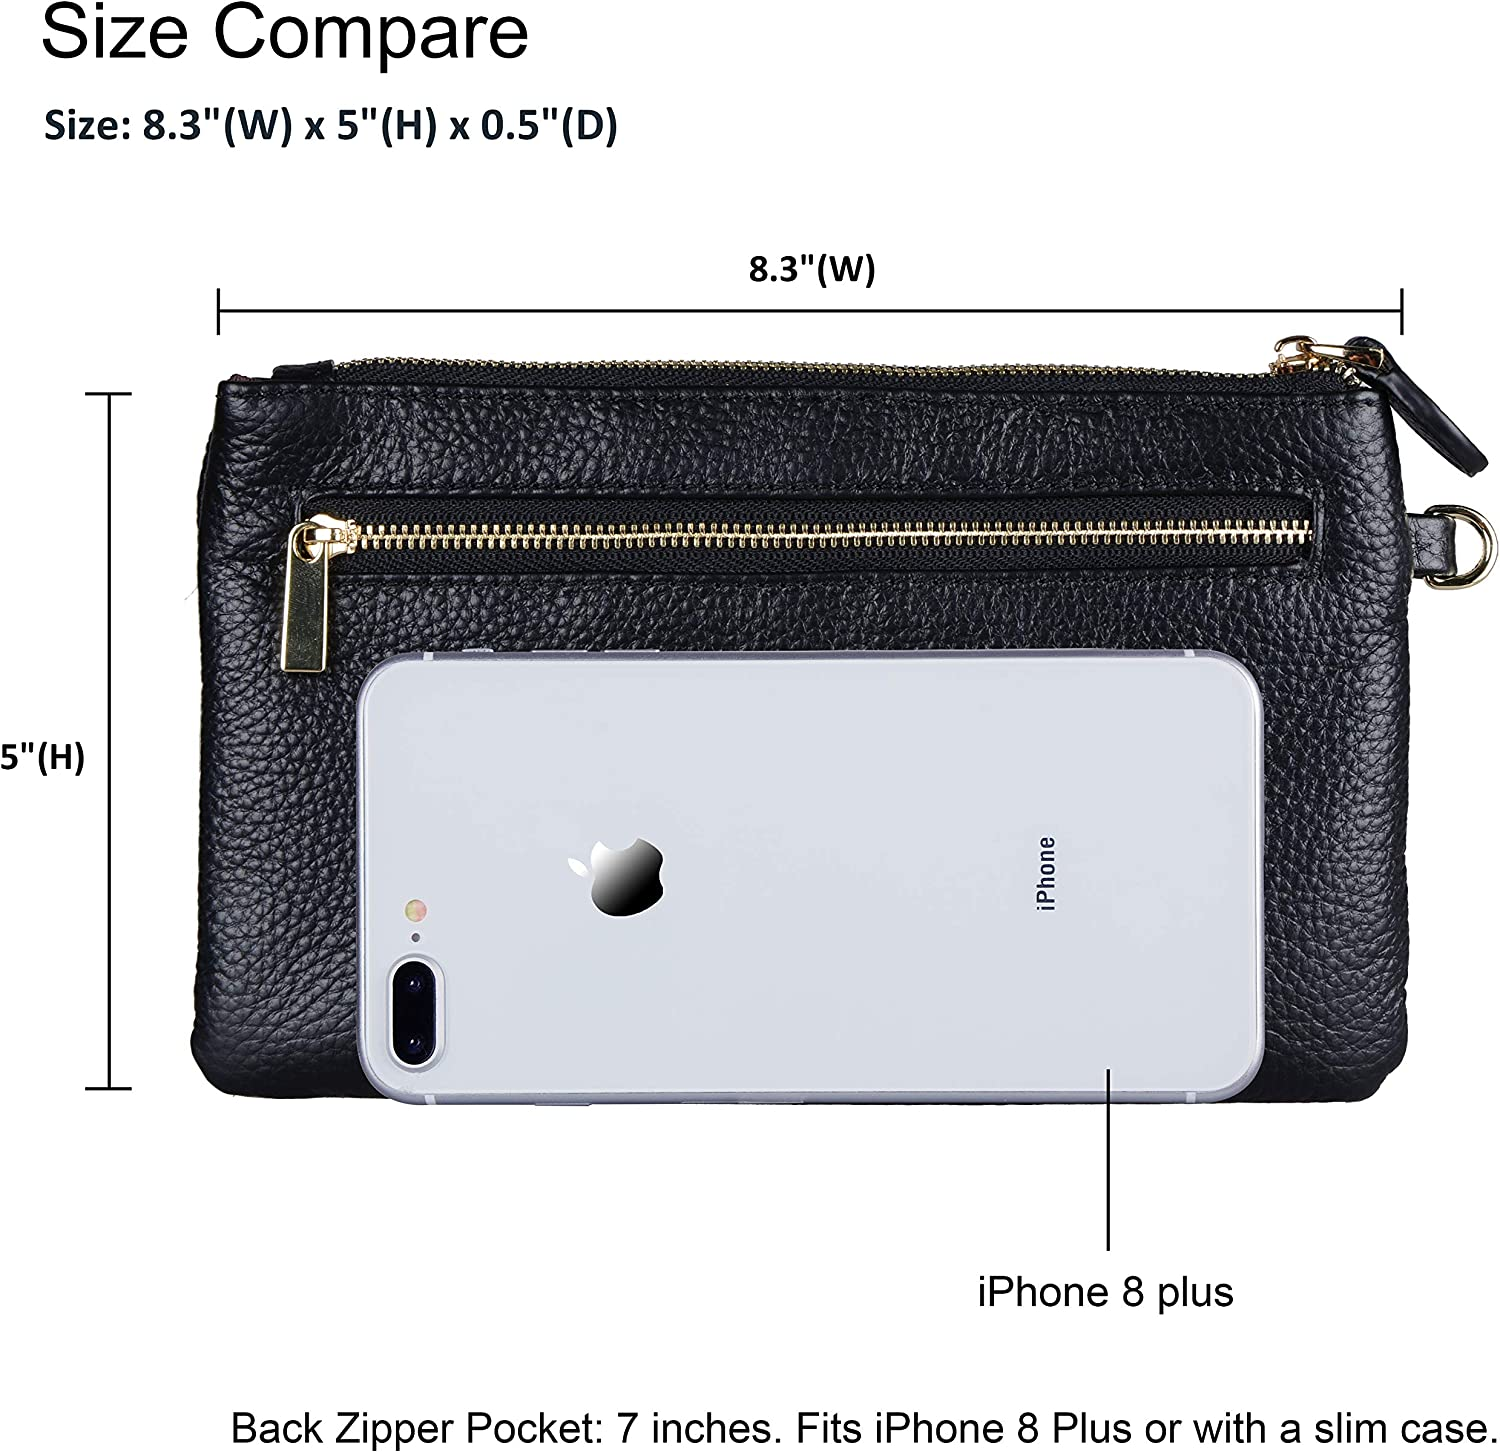 Fit iPhone 8 Plus or Phone Less 6.5 Inch 100/% Genuine Leather wristlet bags for women,Befen Real Leather Ladies Wristlet Purse with Detachable/Wrist Strap /& Zip Closure for Evening,Holiday